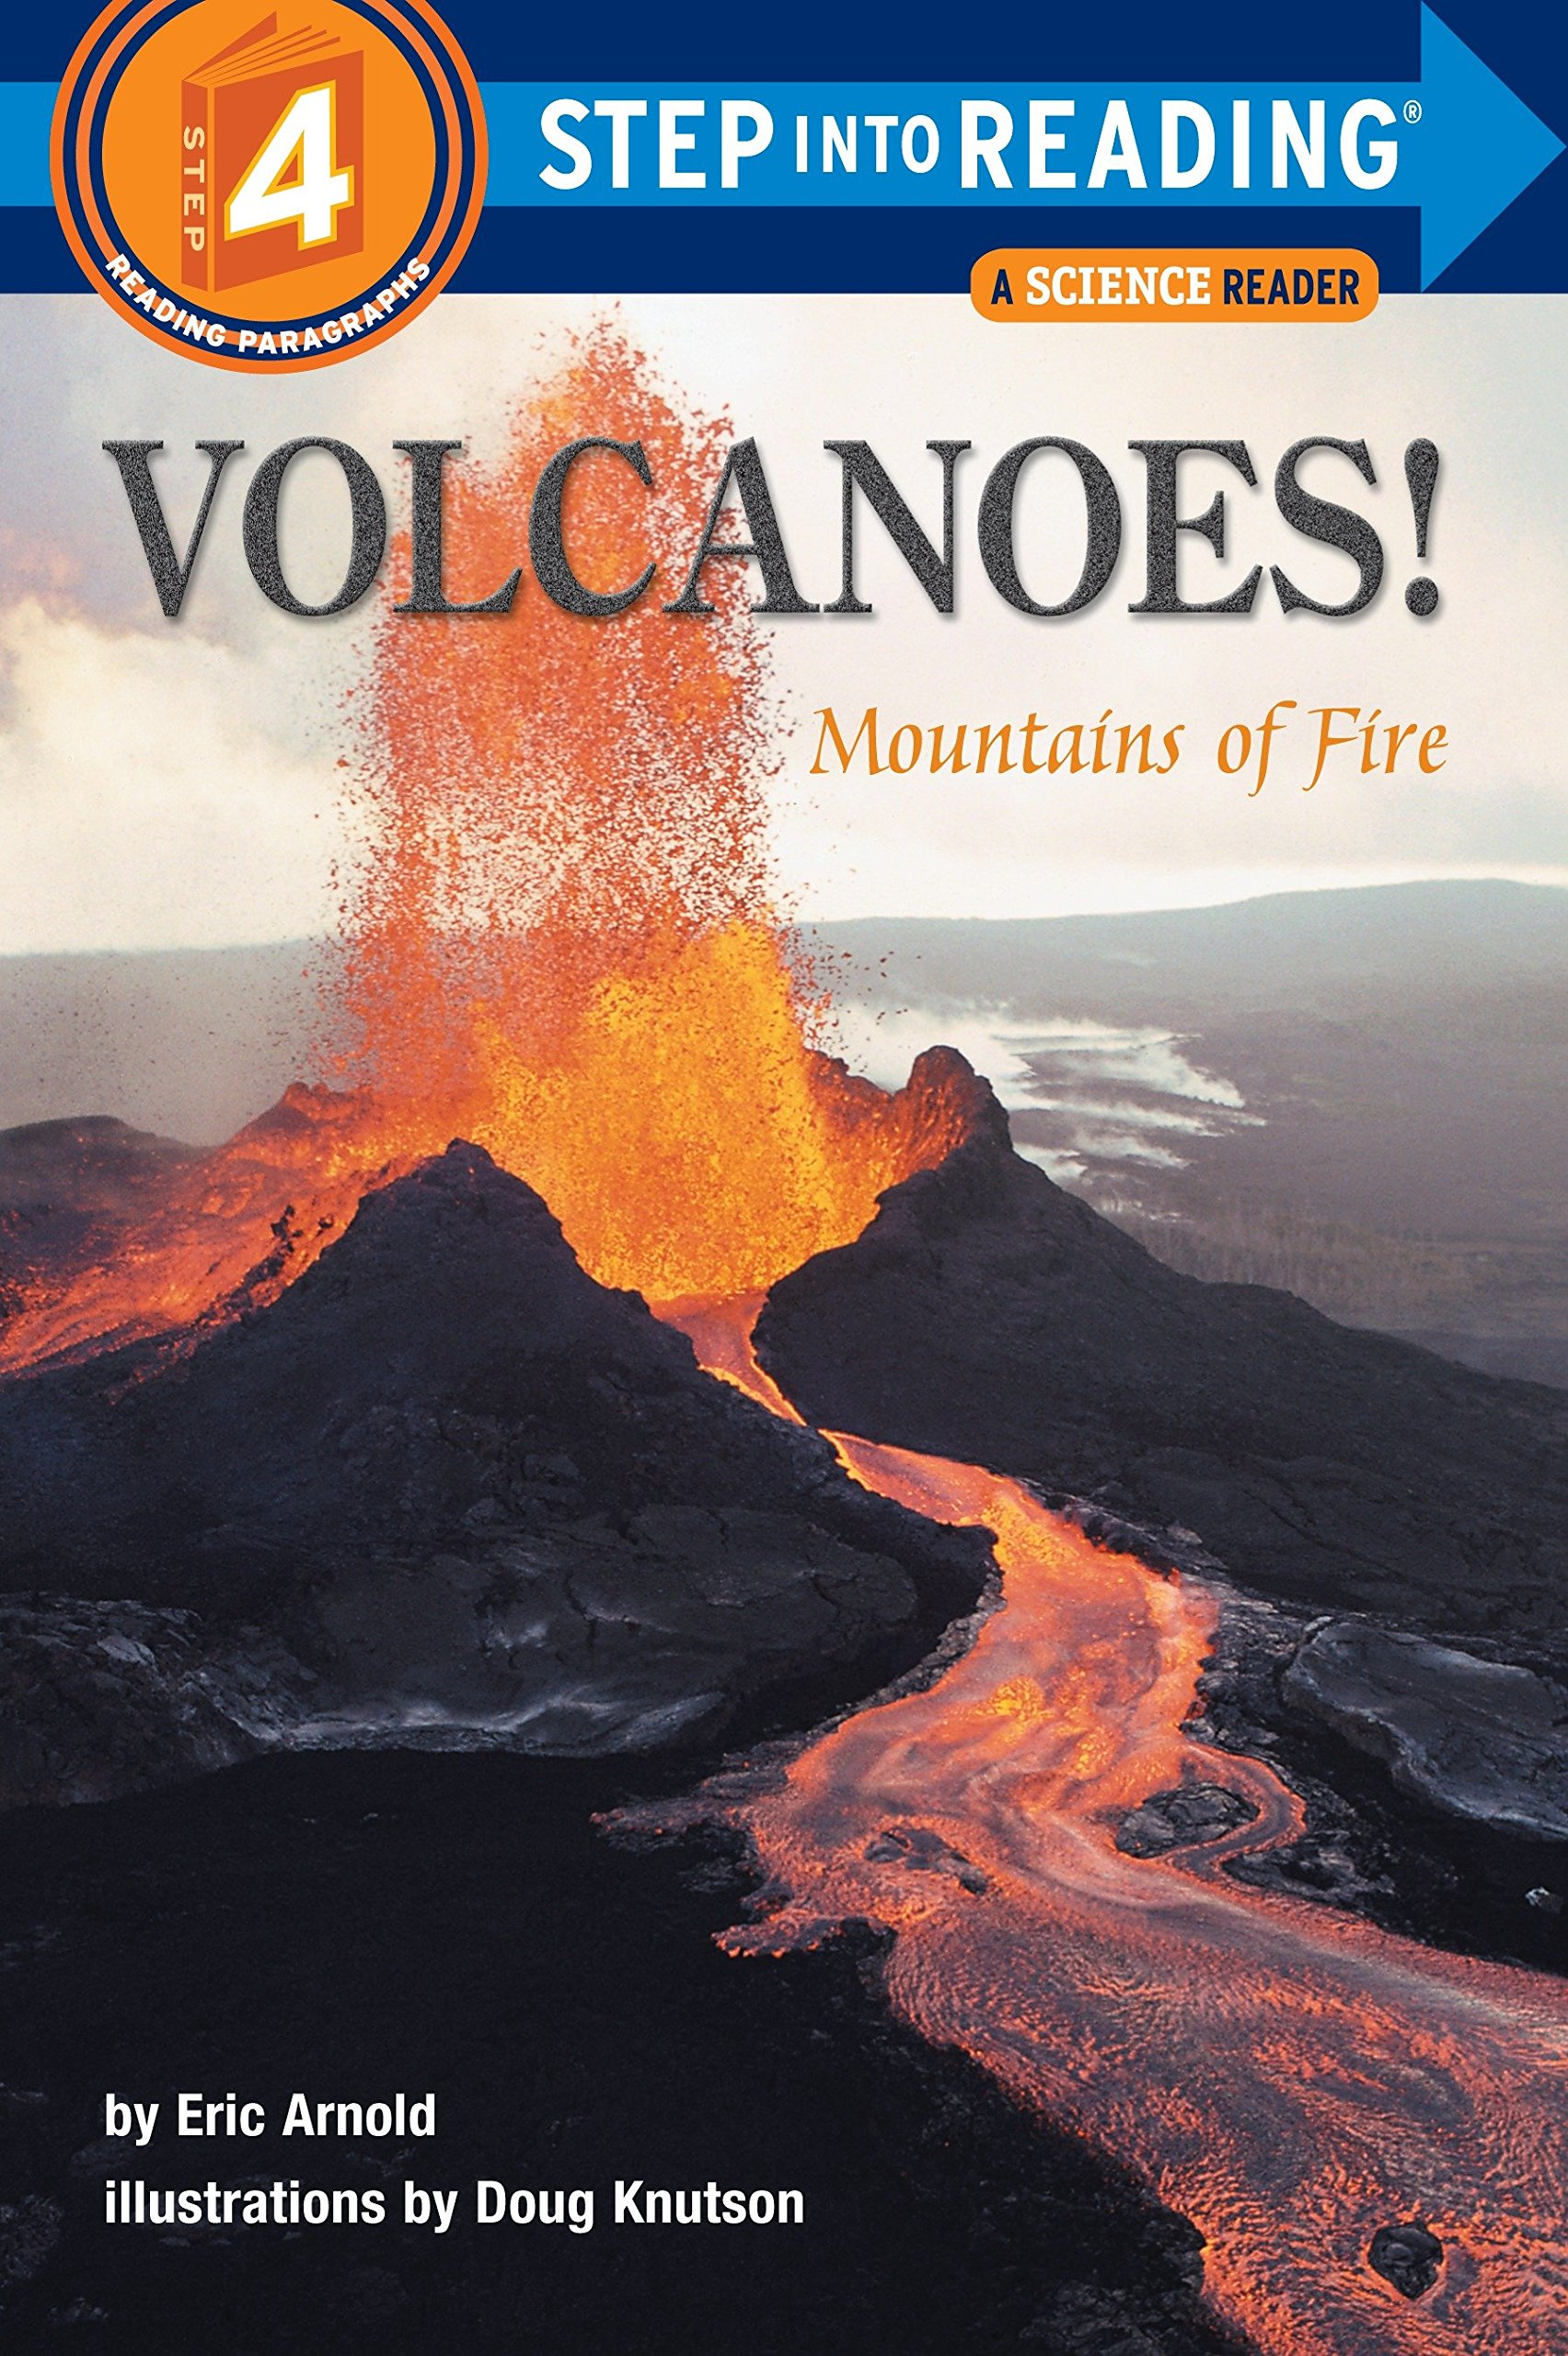 Volcanoes!: Mountains of Fire